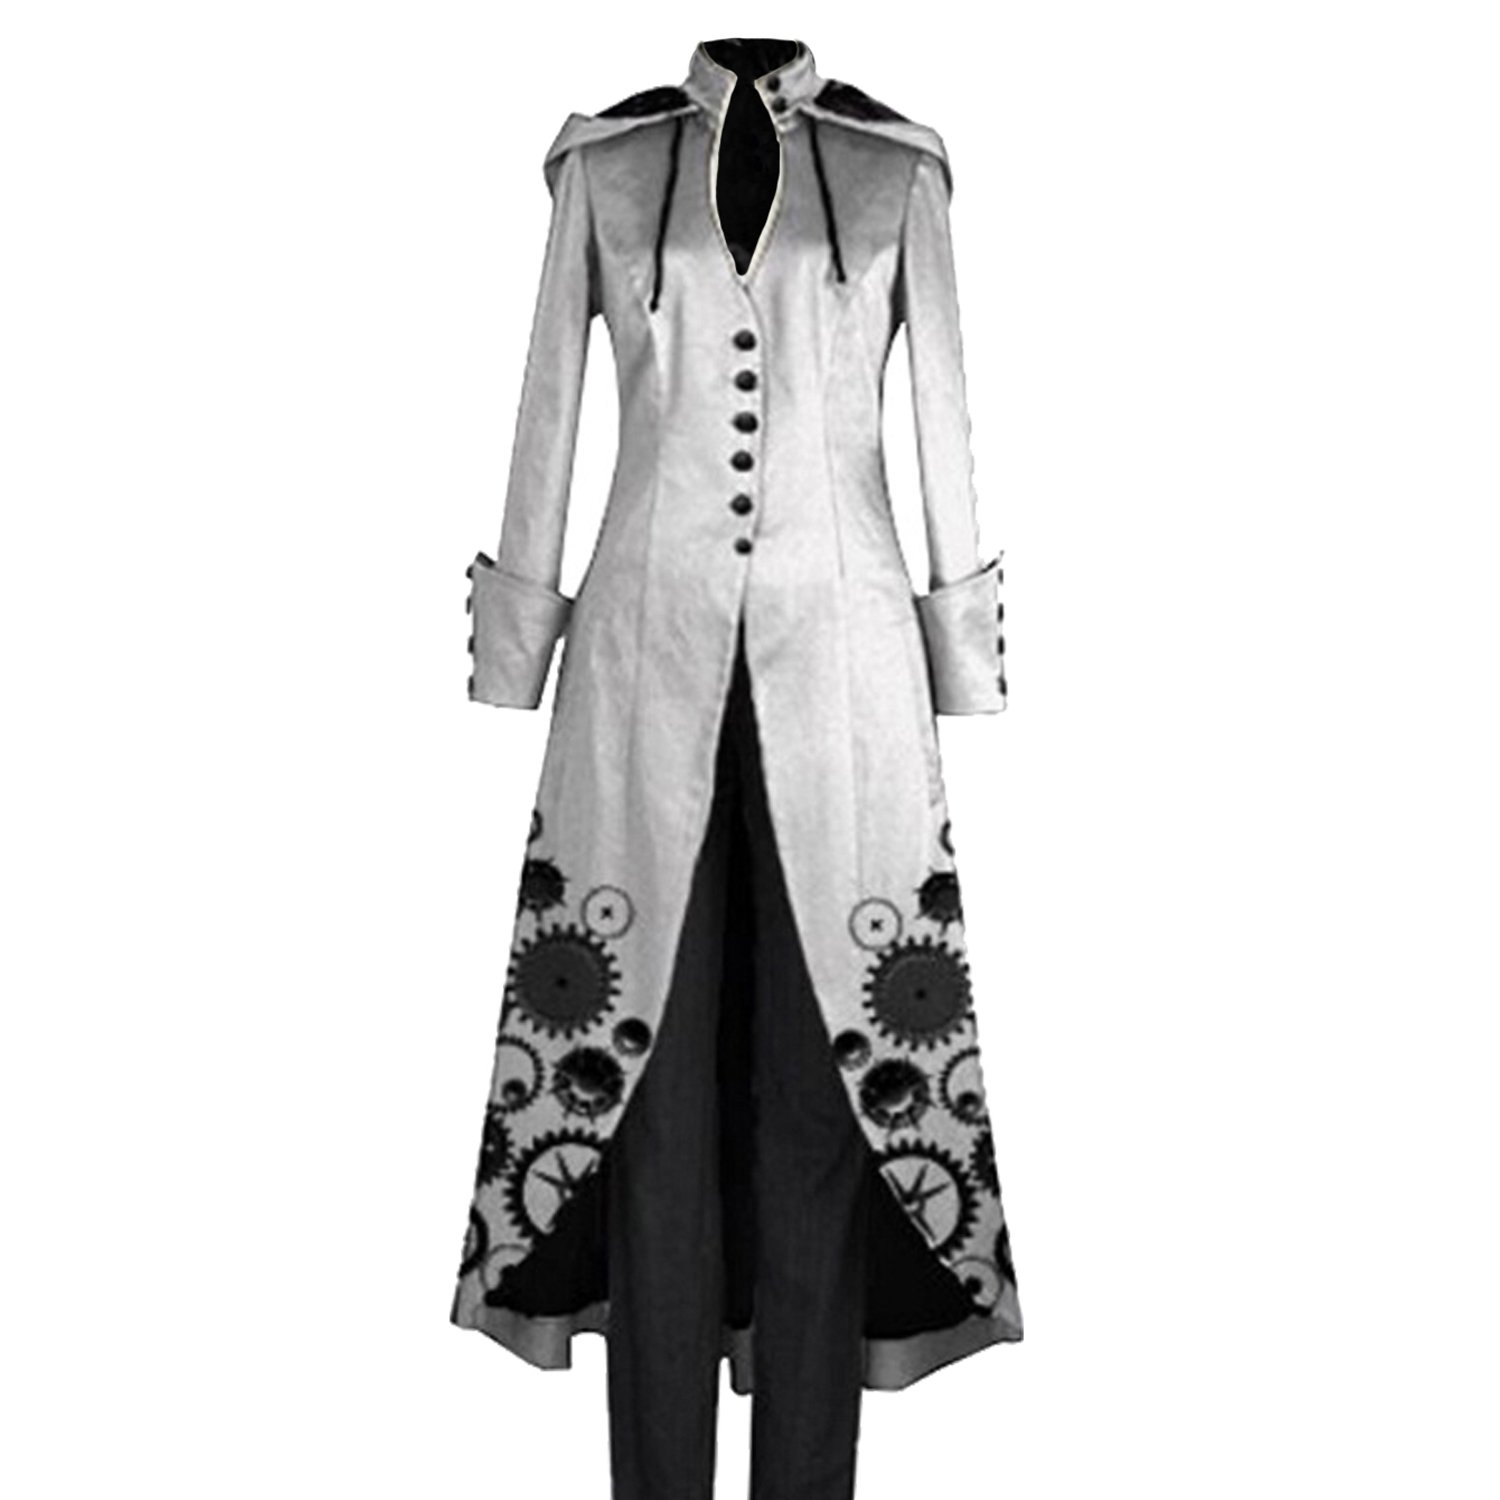 Womens Vintage Steampunk Overcoat Victorian Hooded Retro Lace Up Gothic Coat